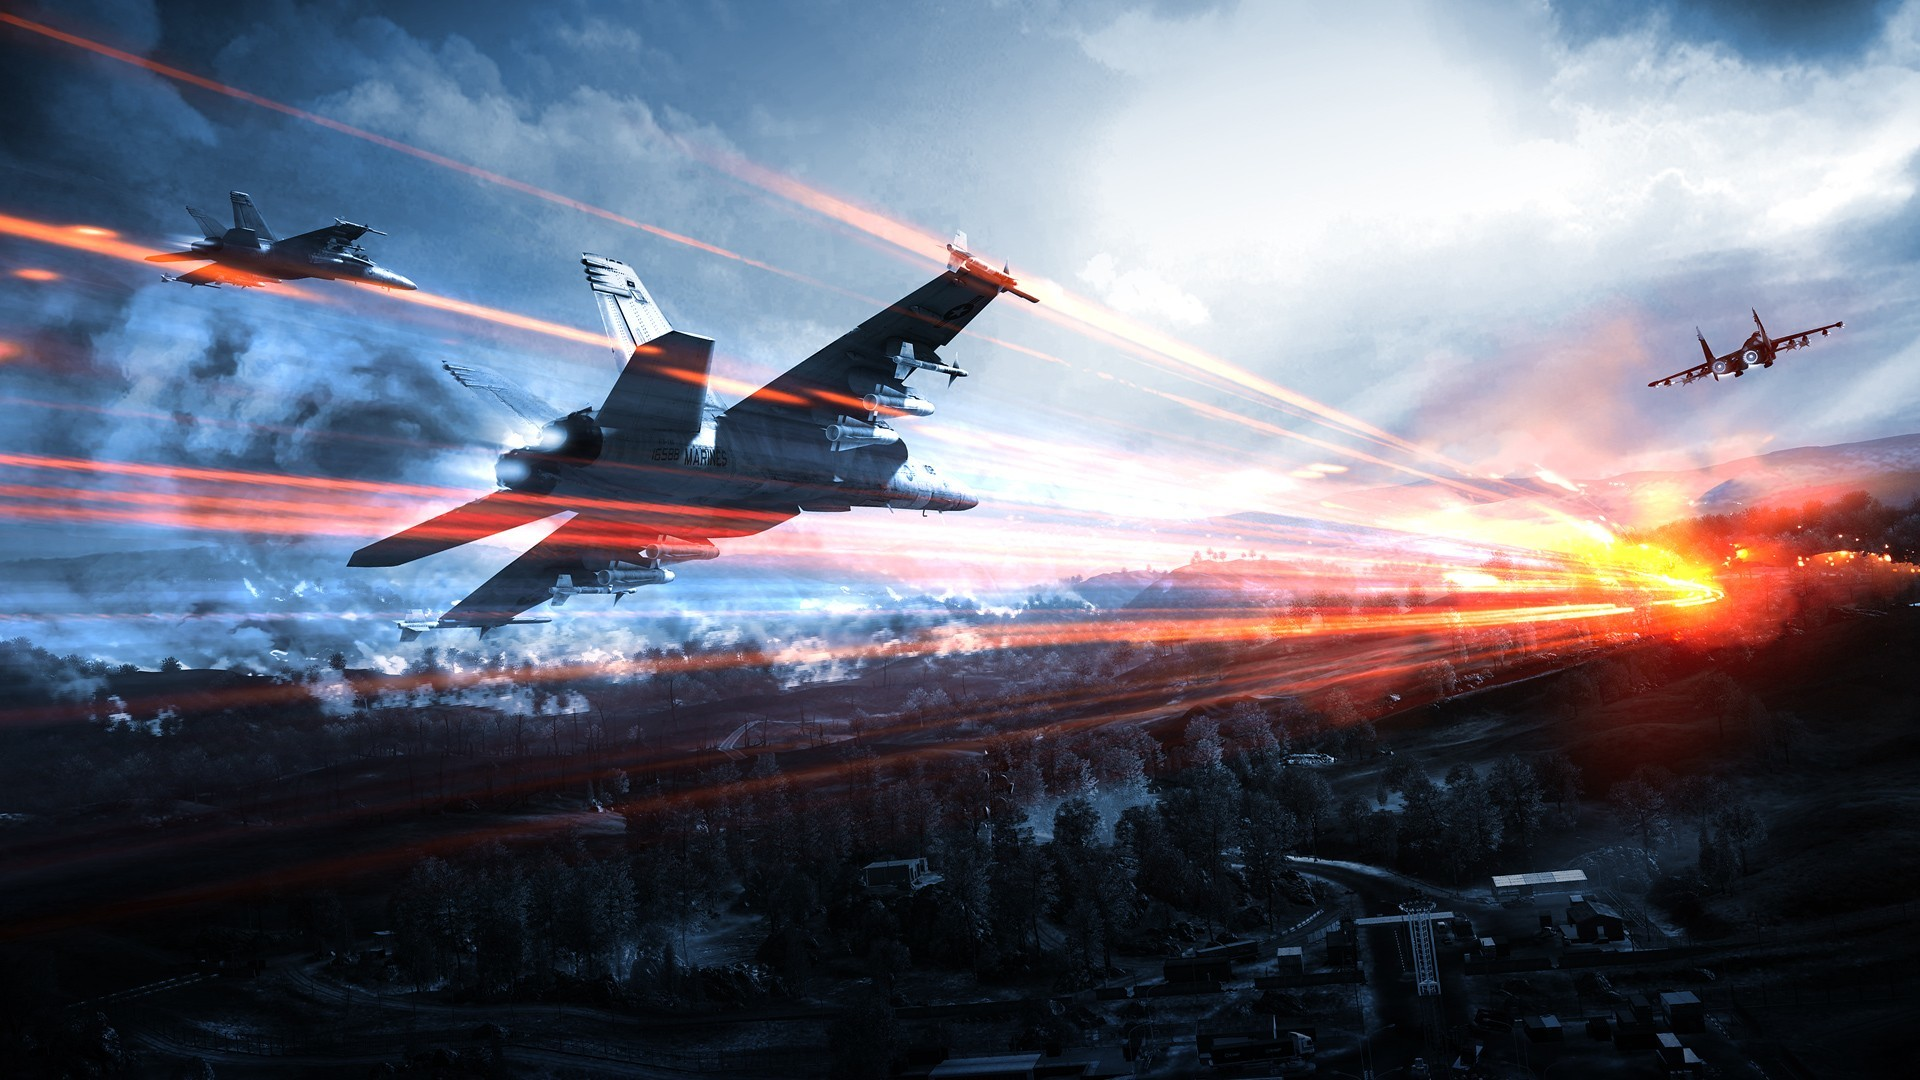 soldiers video games Aircraft HD Wallpaper